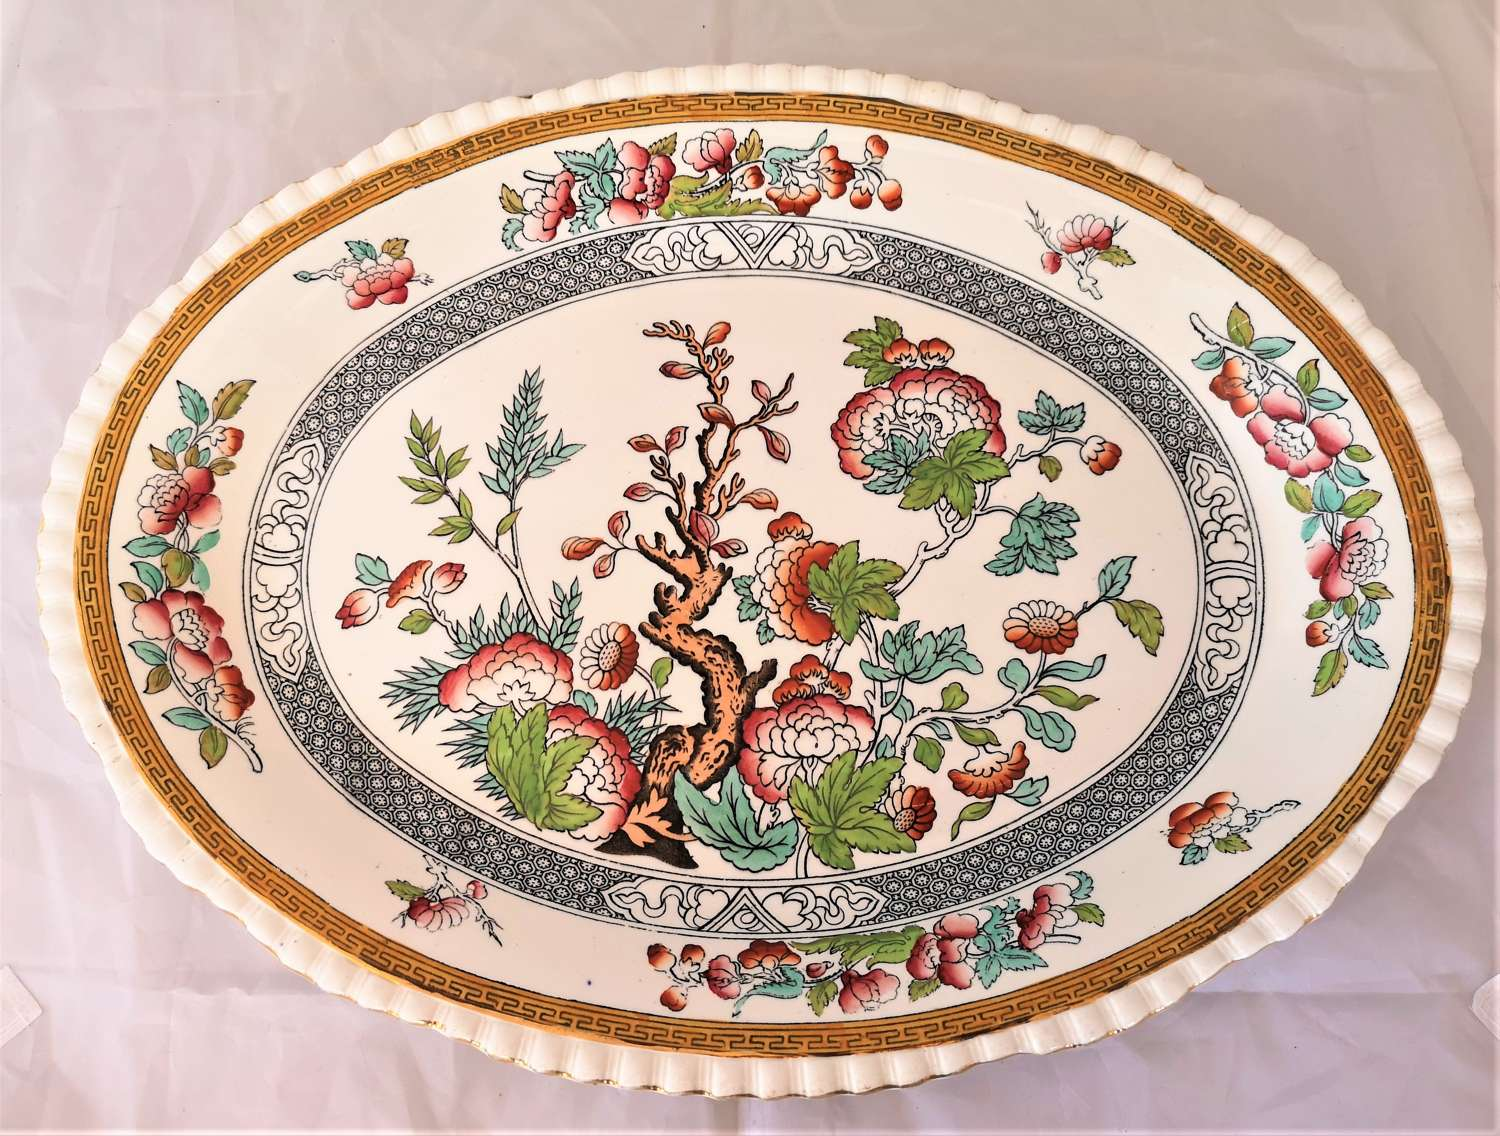 Antique 19th century large ceramic platter